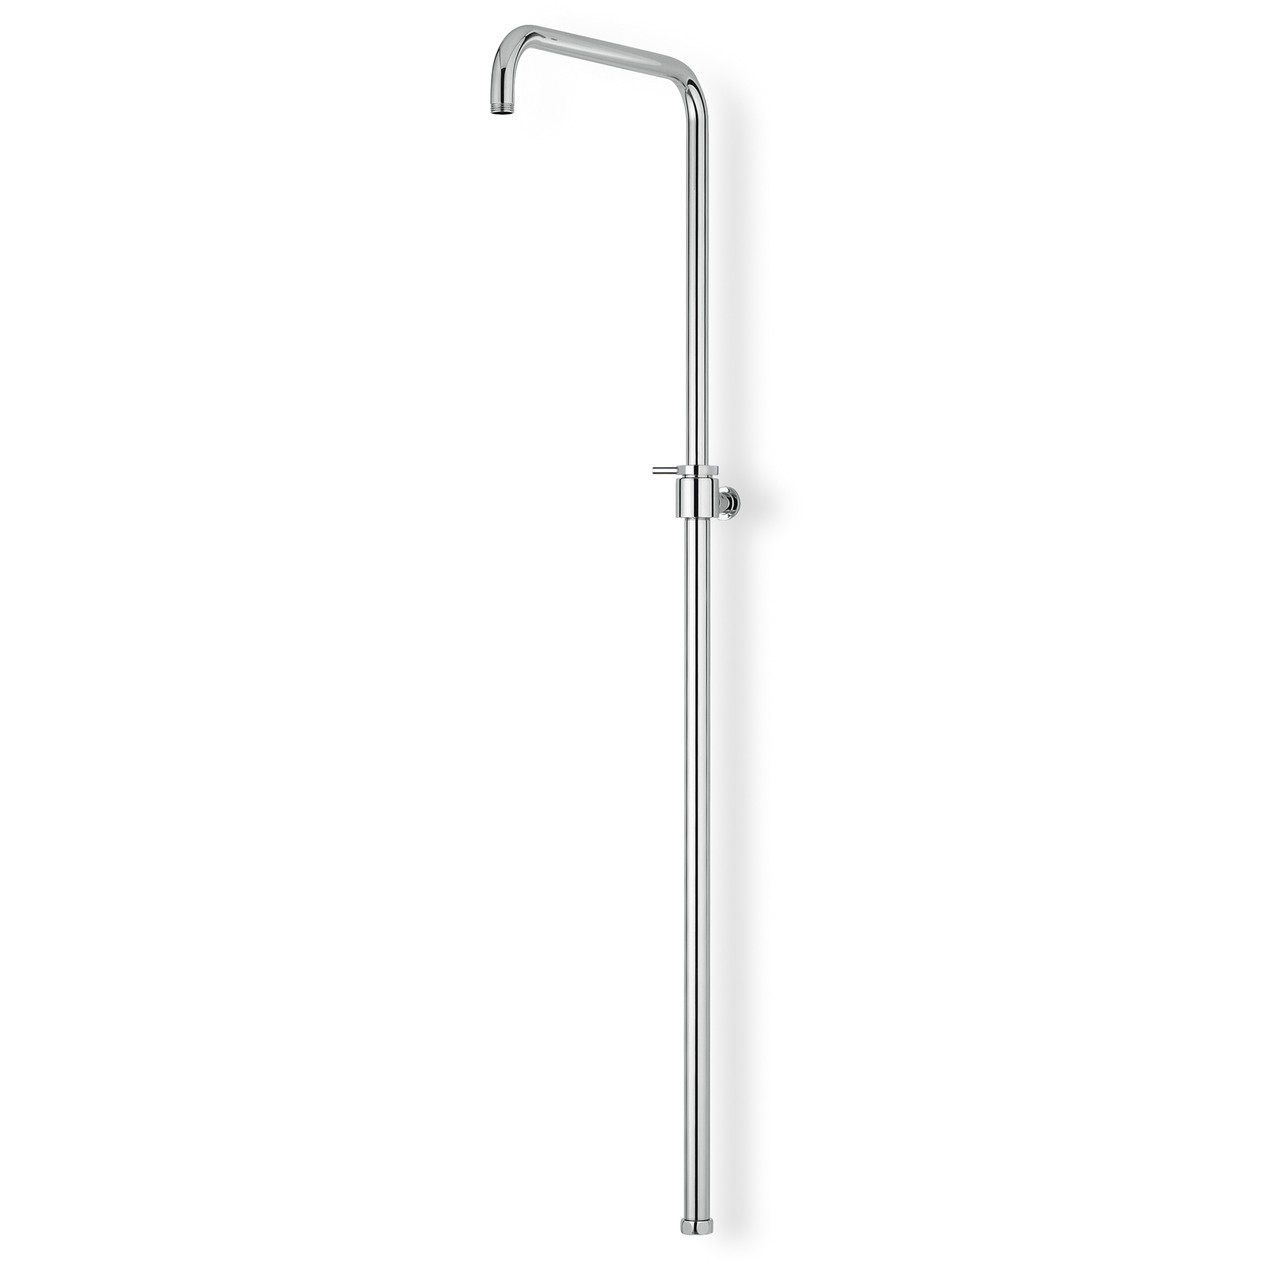 Telescopic bridge shower column